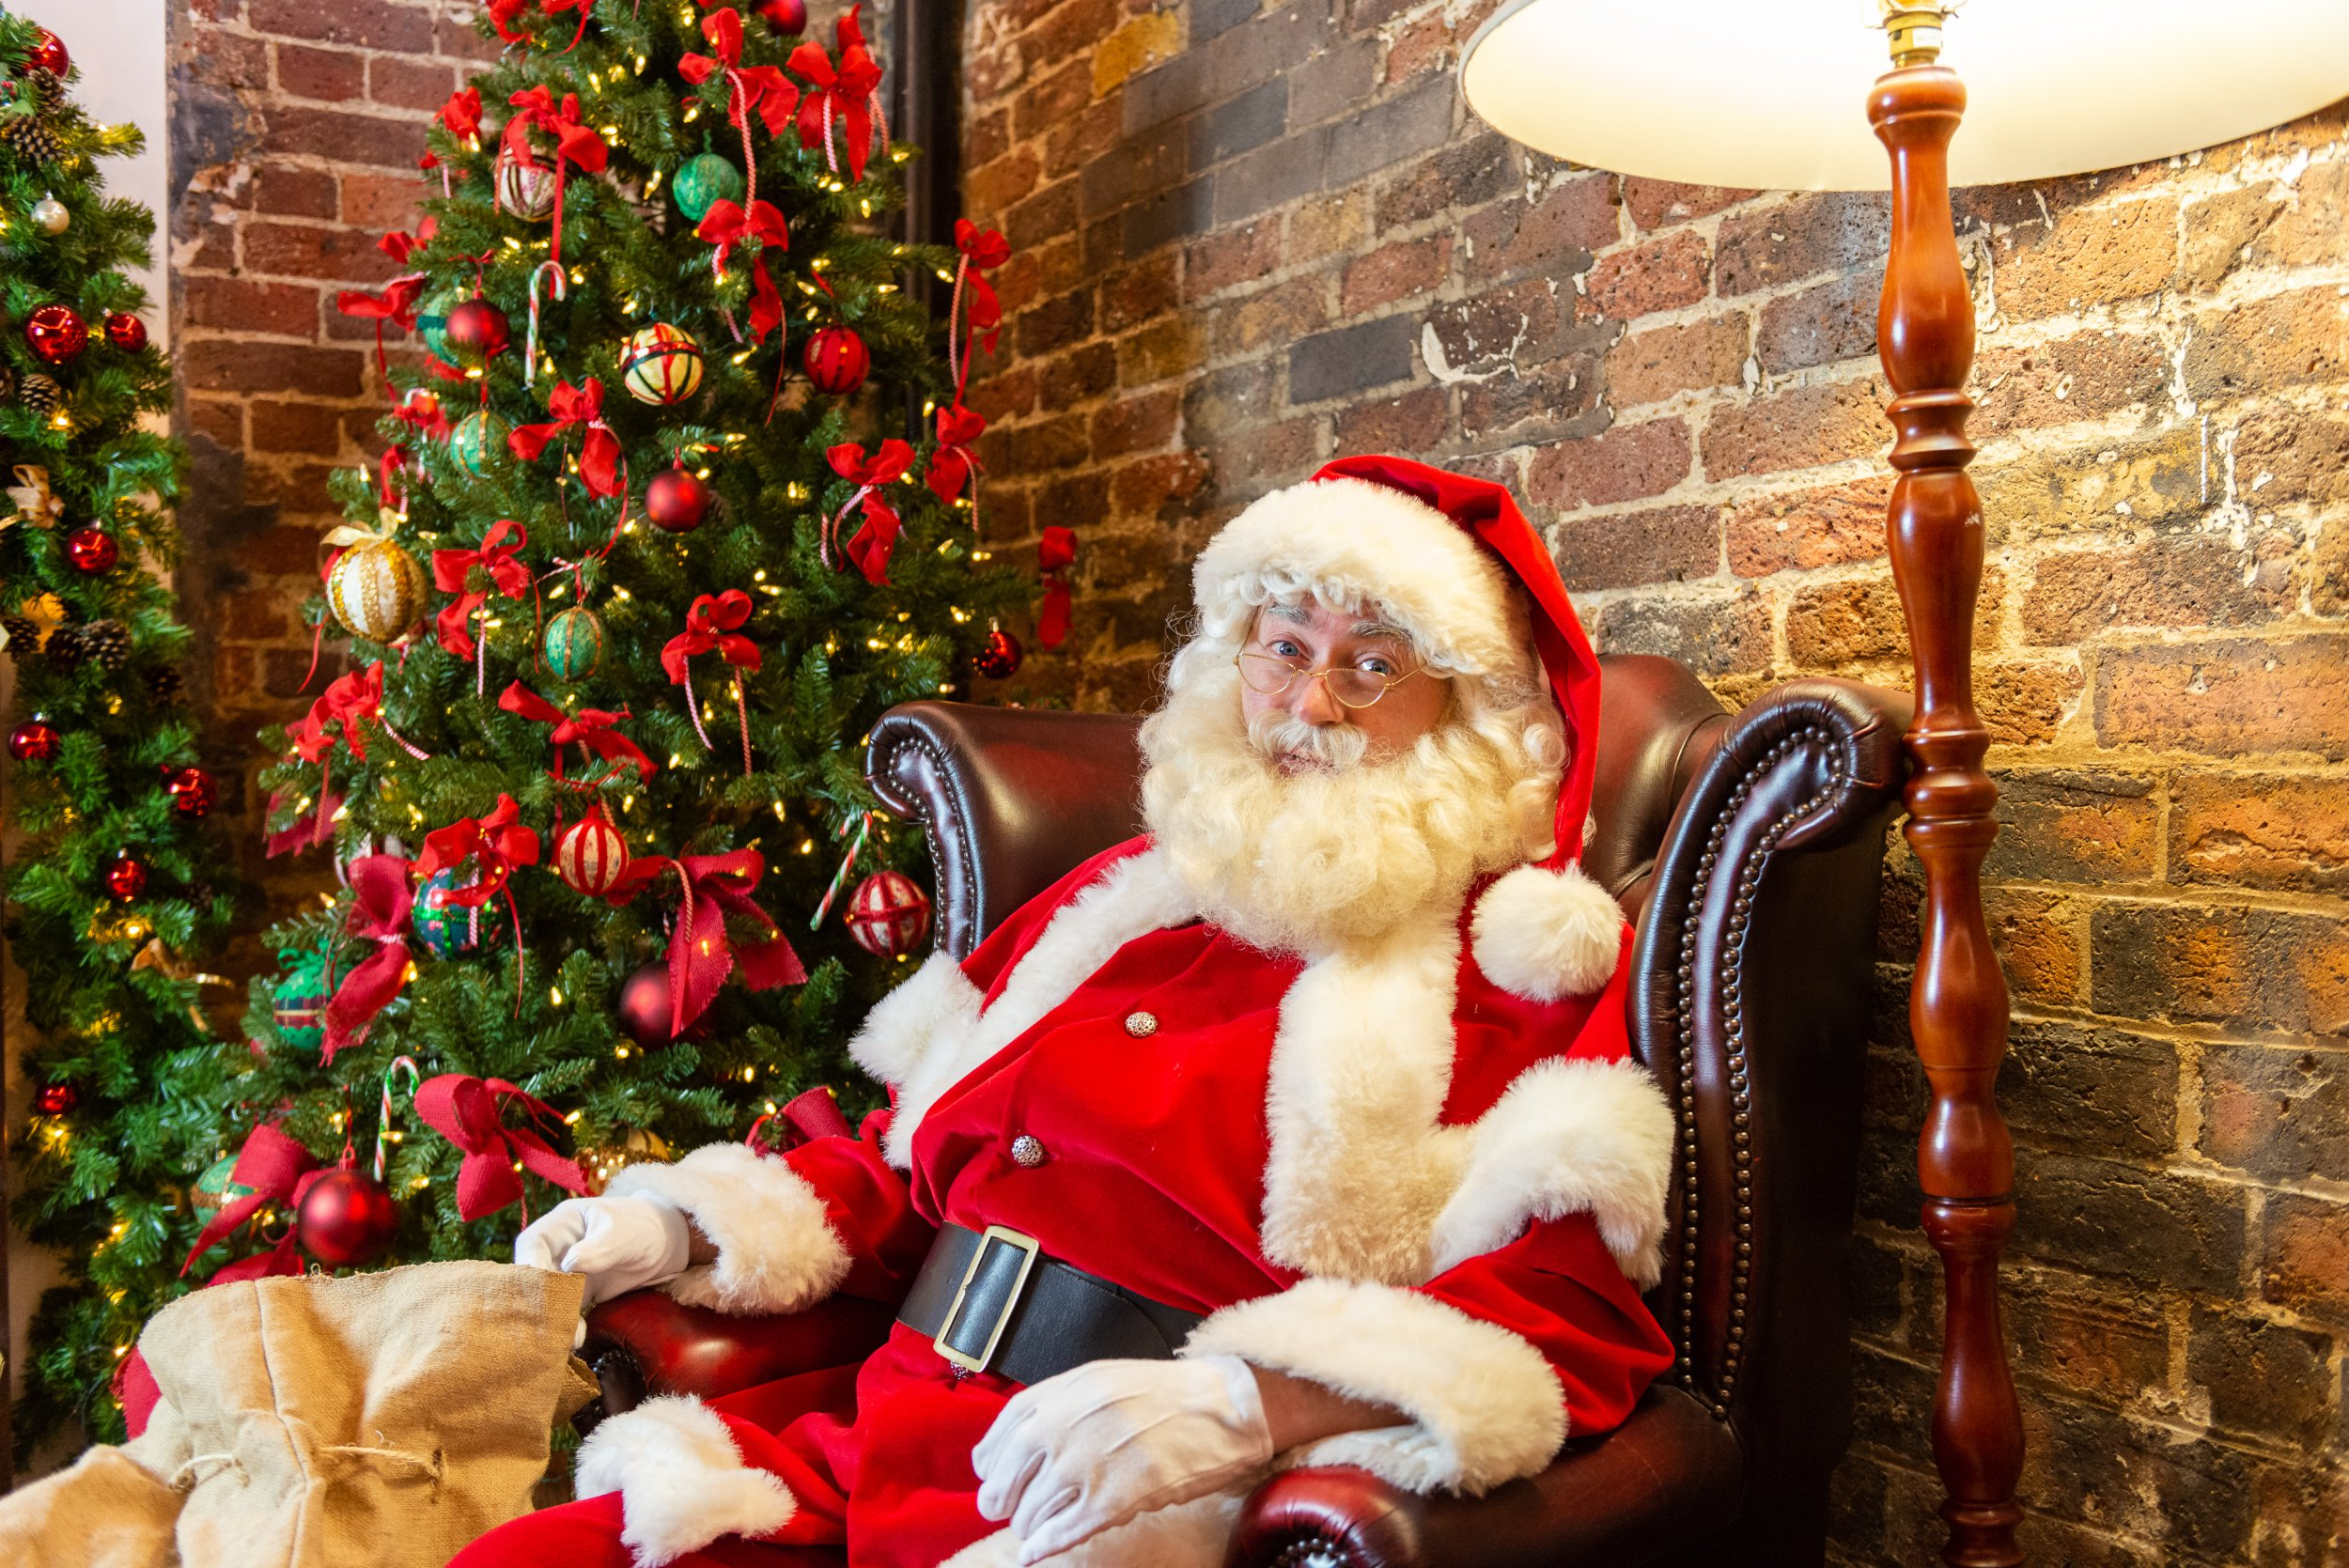 My odd job: There is no place for whinging when you're Santa